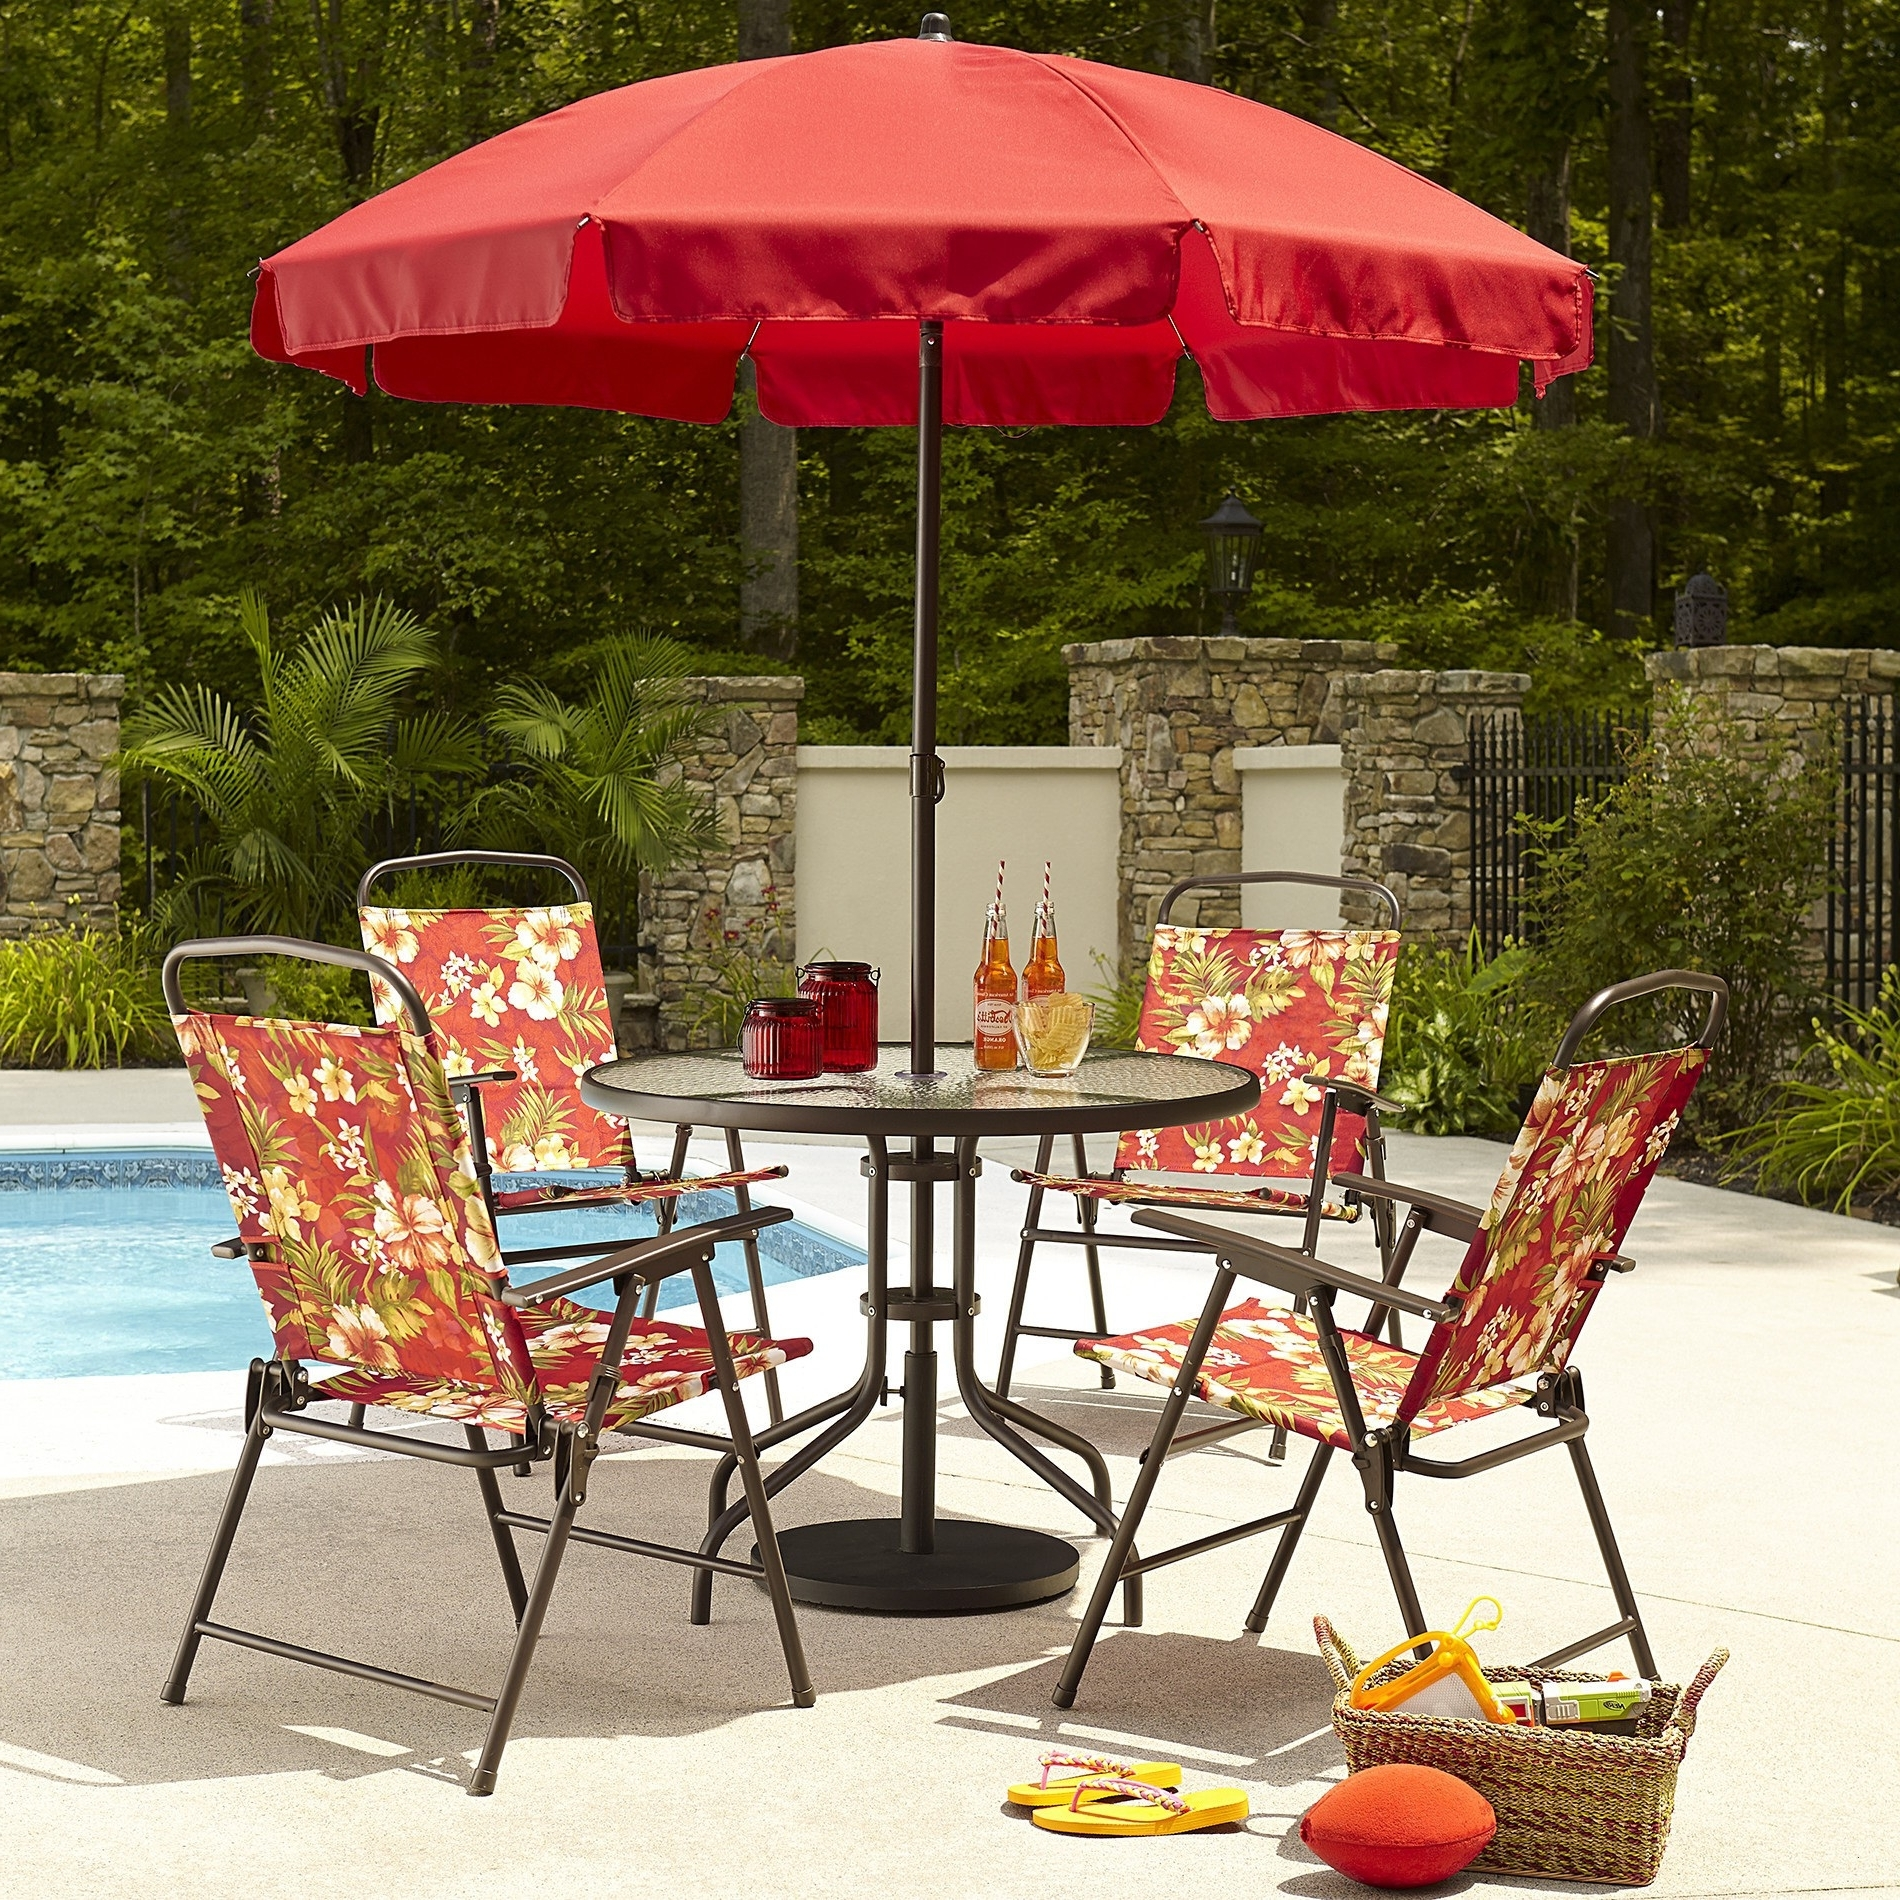 Kmart Patio Umbrellas With Regard To Famous Kmart Outdoor Furniture Clearance New Cheap Kmart Patio Umbrellas (View 2 of 20)